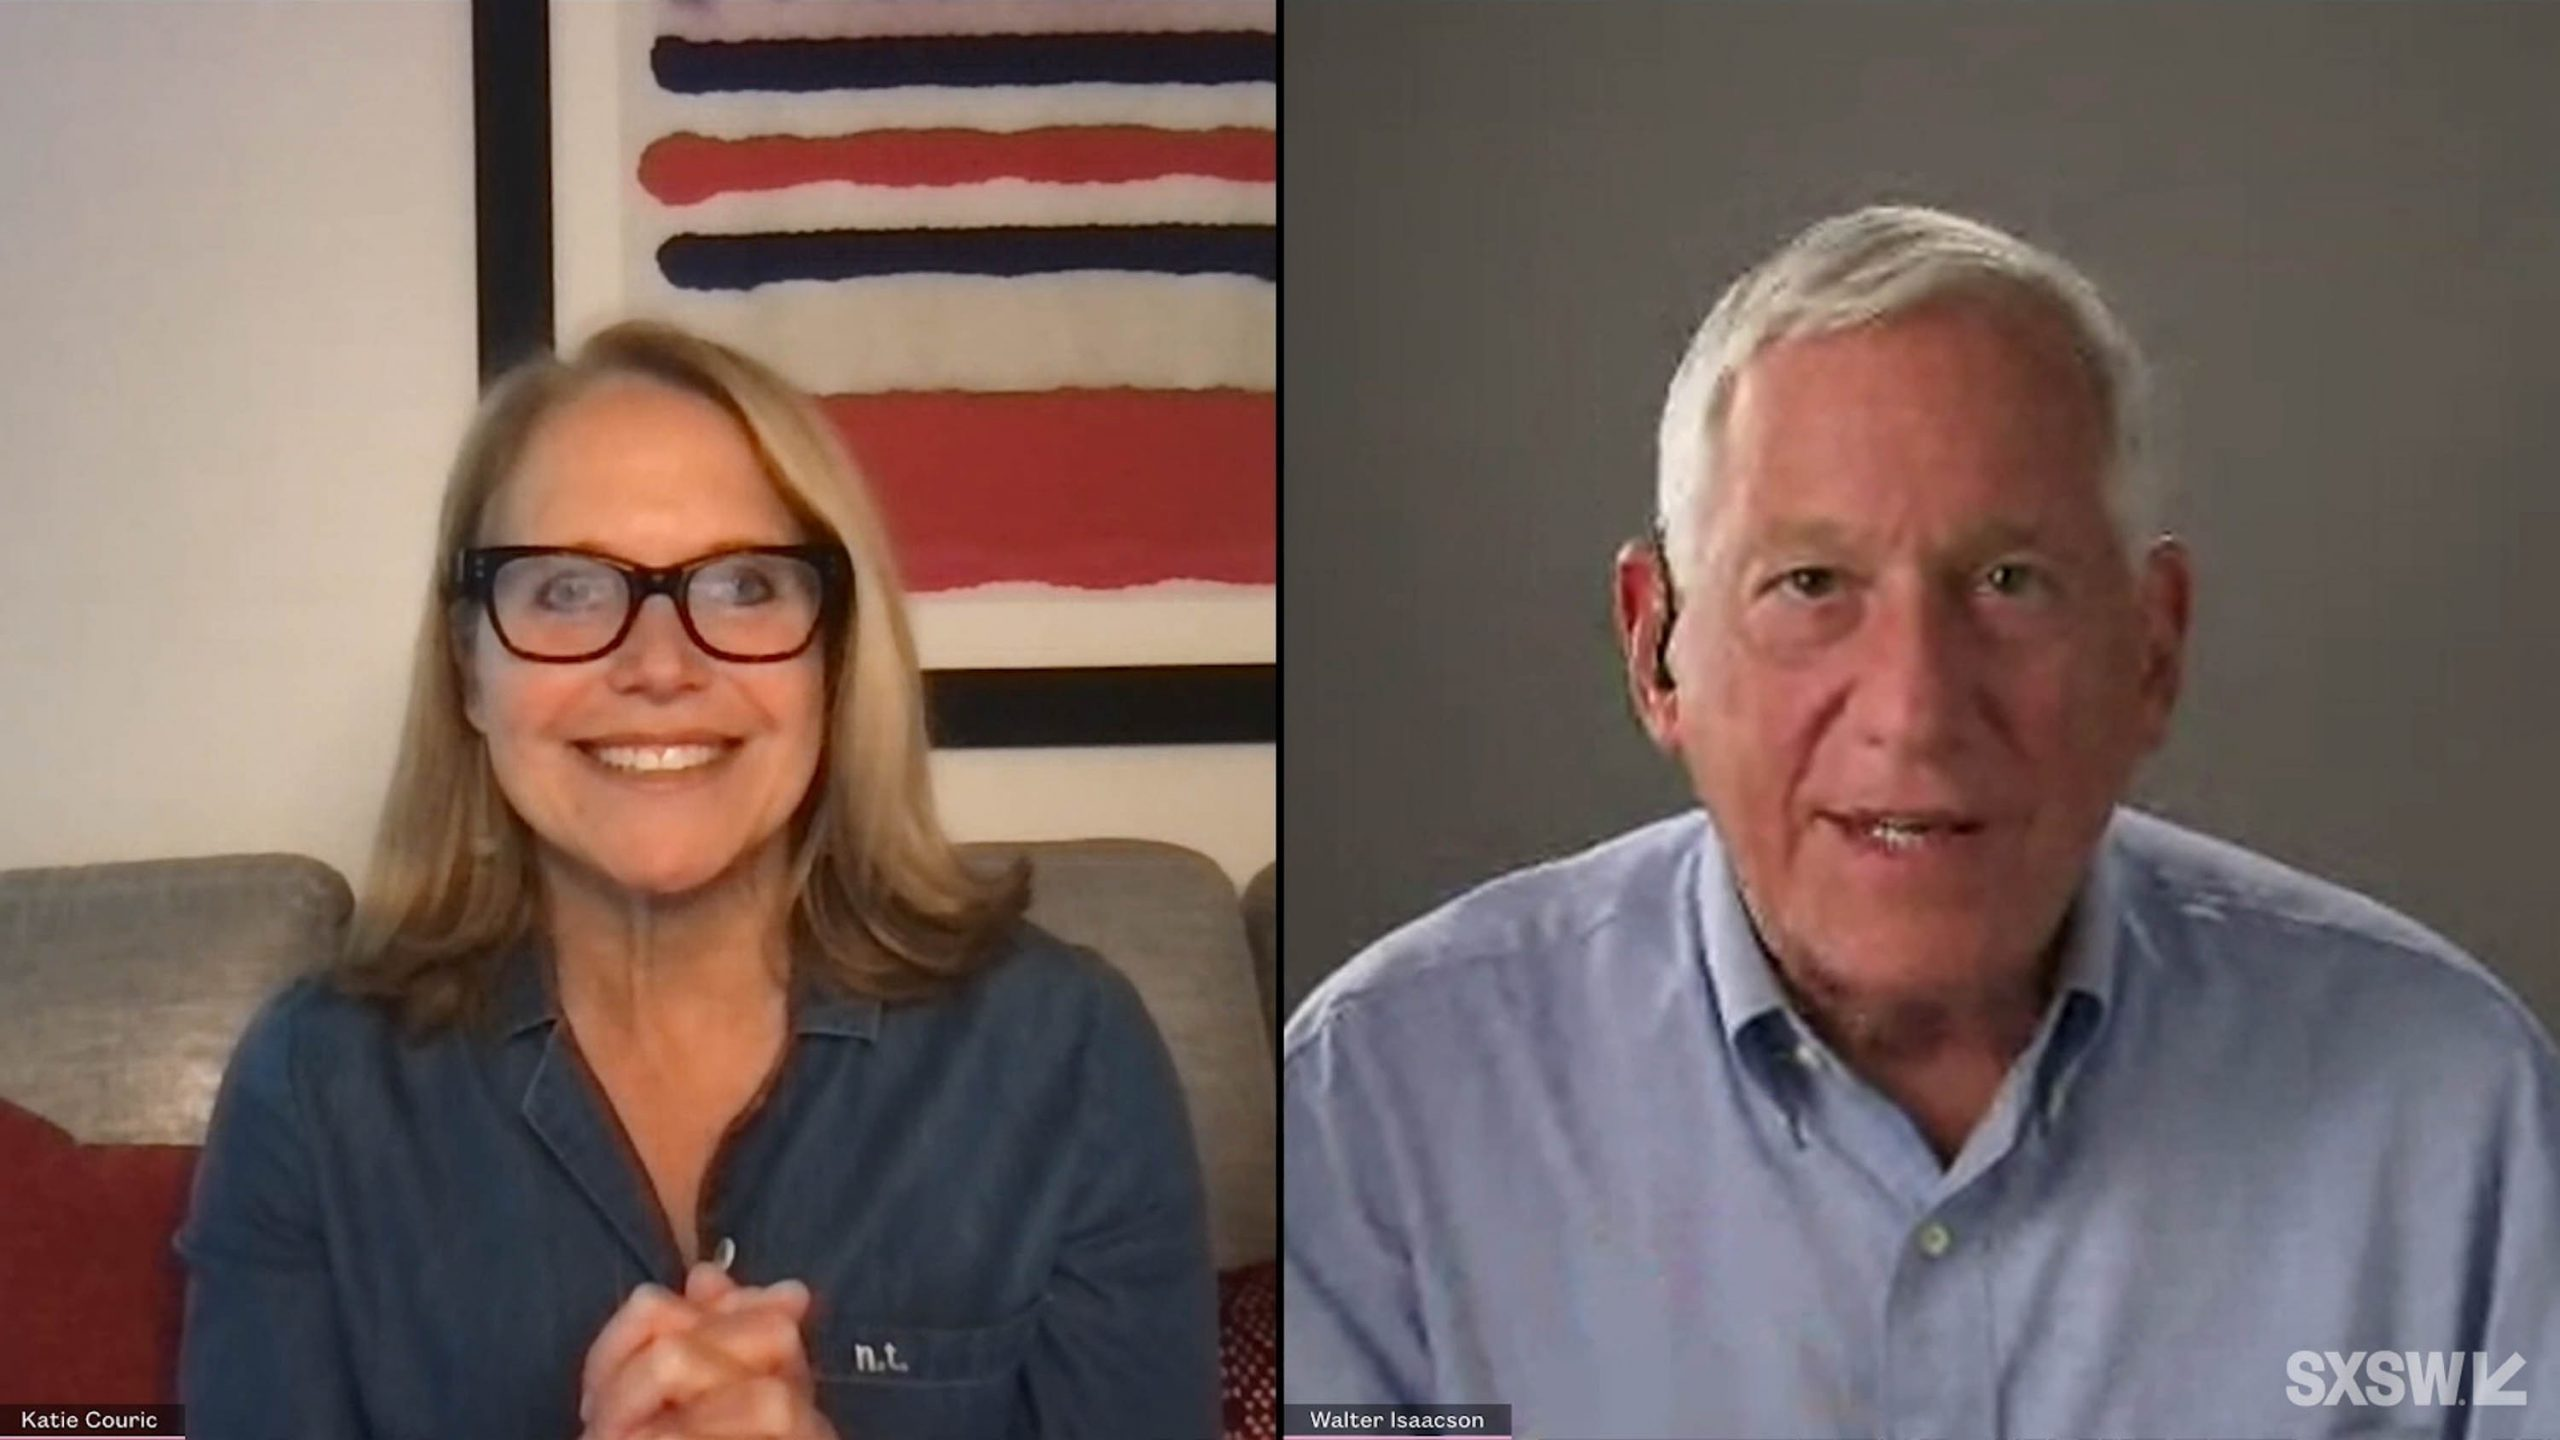 """From left: Katie Couric and Walter Isaacson speak at the featured session """"Gene Editing: The Biotech Revolution of our Times"""" during SXSW Online on March 19, 2021."""